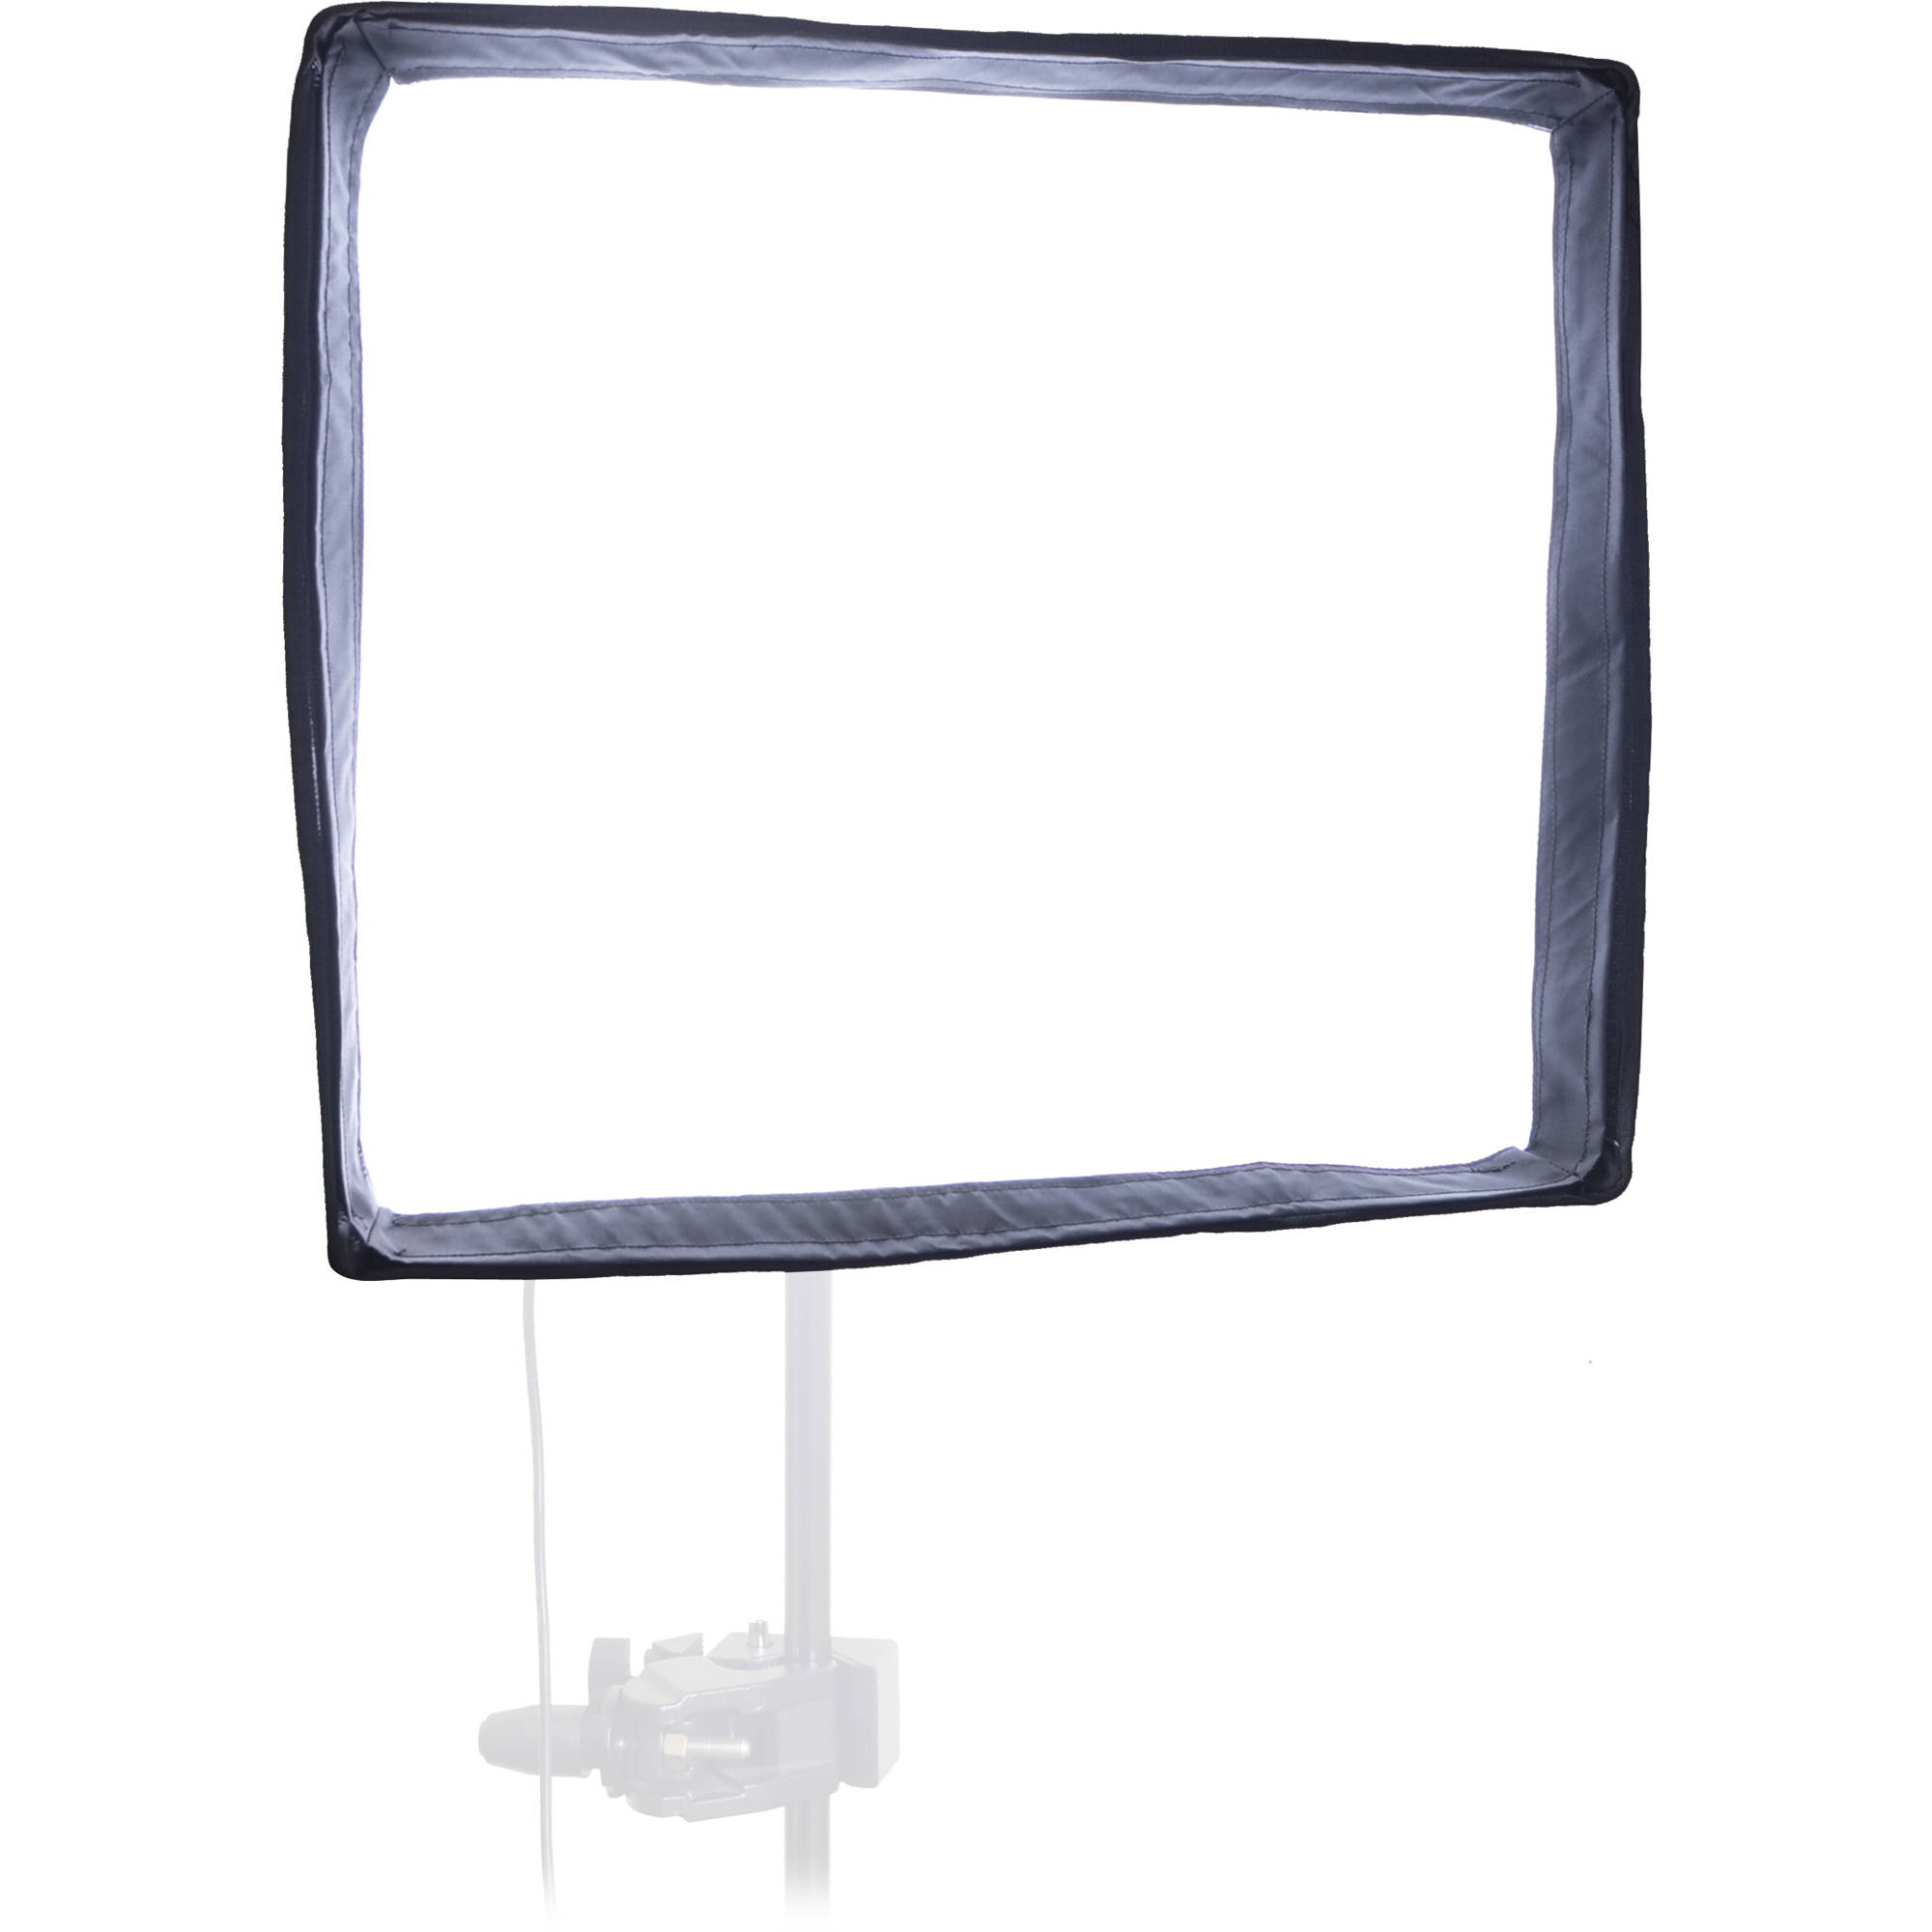 Cineroid GD-LM400 Grid for LM400 Works with Softbox